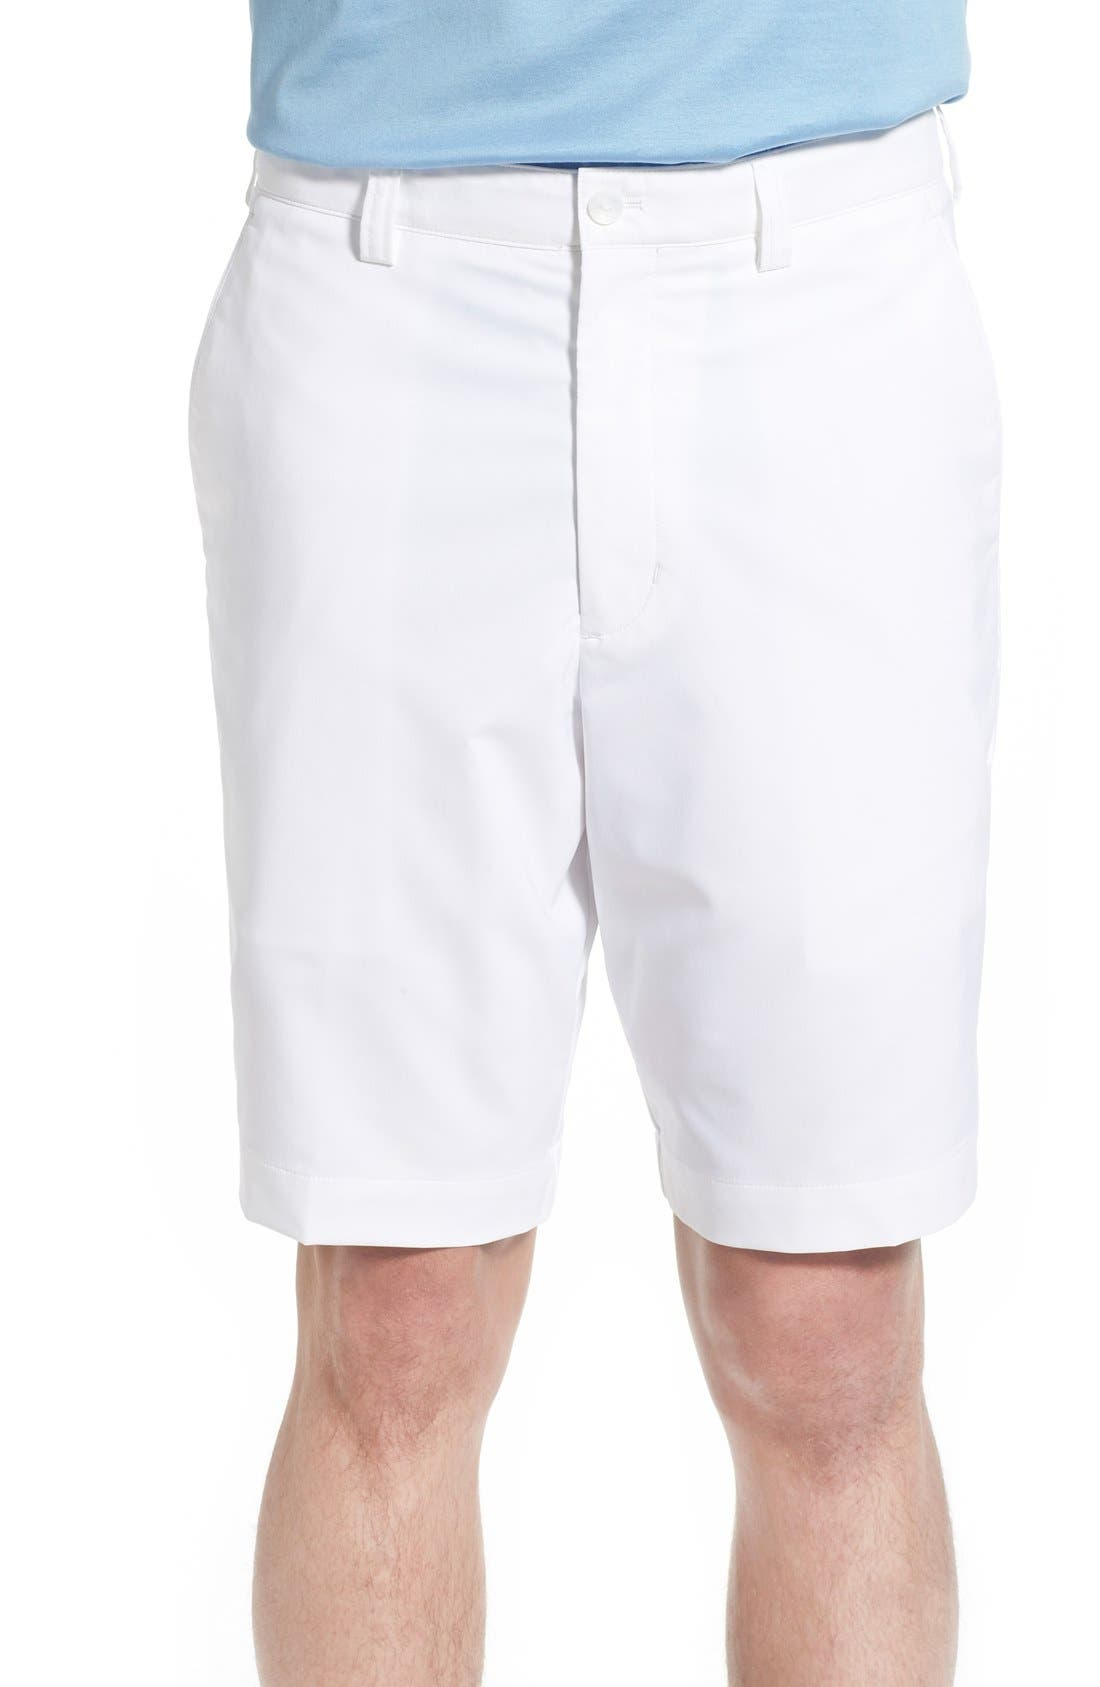 Cutter & Buck DryTec Shorts